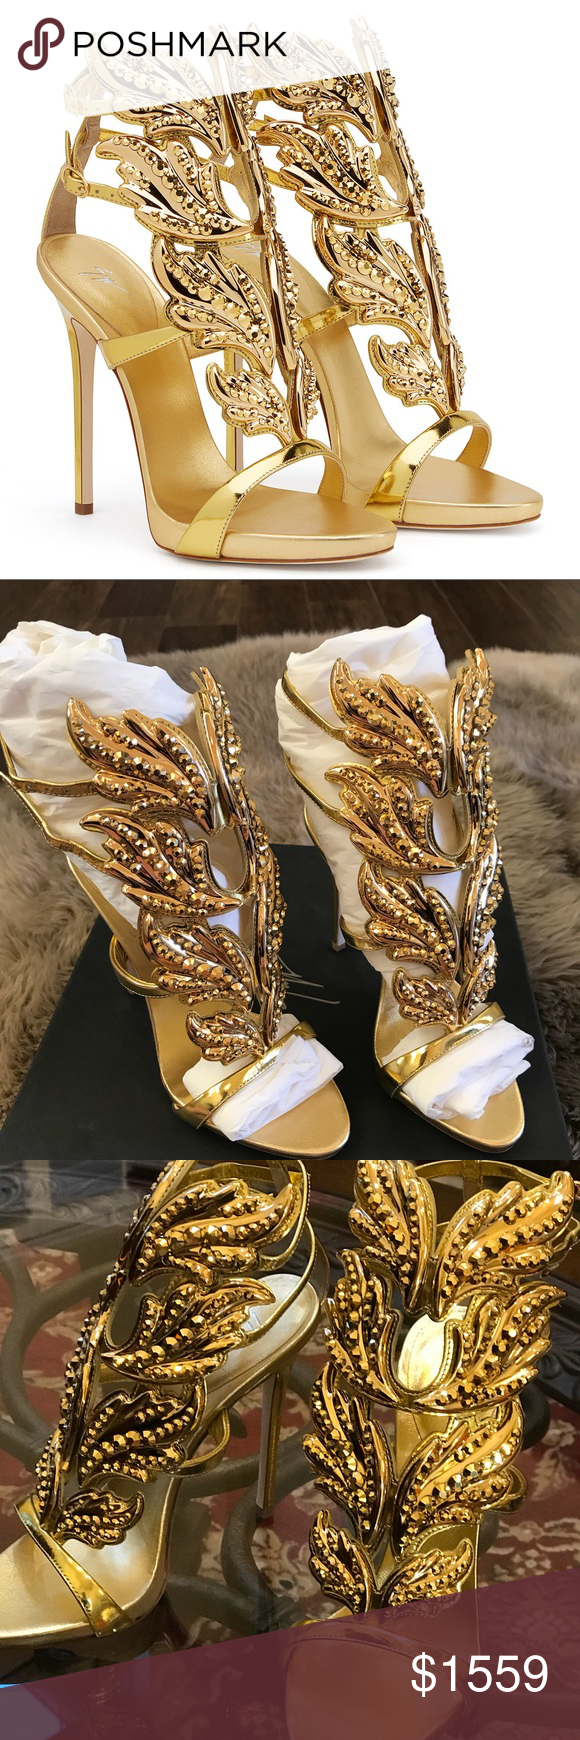 e658d9699880 New Giuseppe Zanotti Cruel Gold Crystal Wing 37 EU Authentic 120mm heel  (4.7 inch) with 10mm (0.4 inch) internal platform Mirrored gold patent  leather upper ...